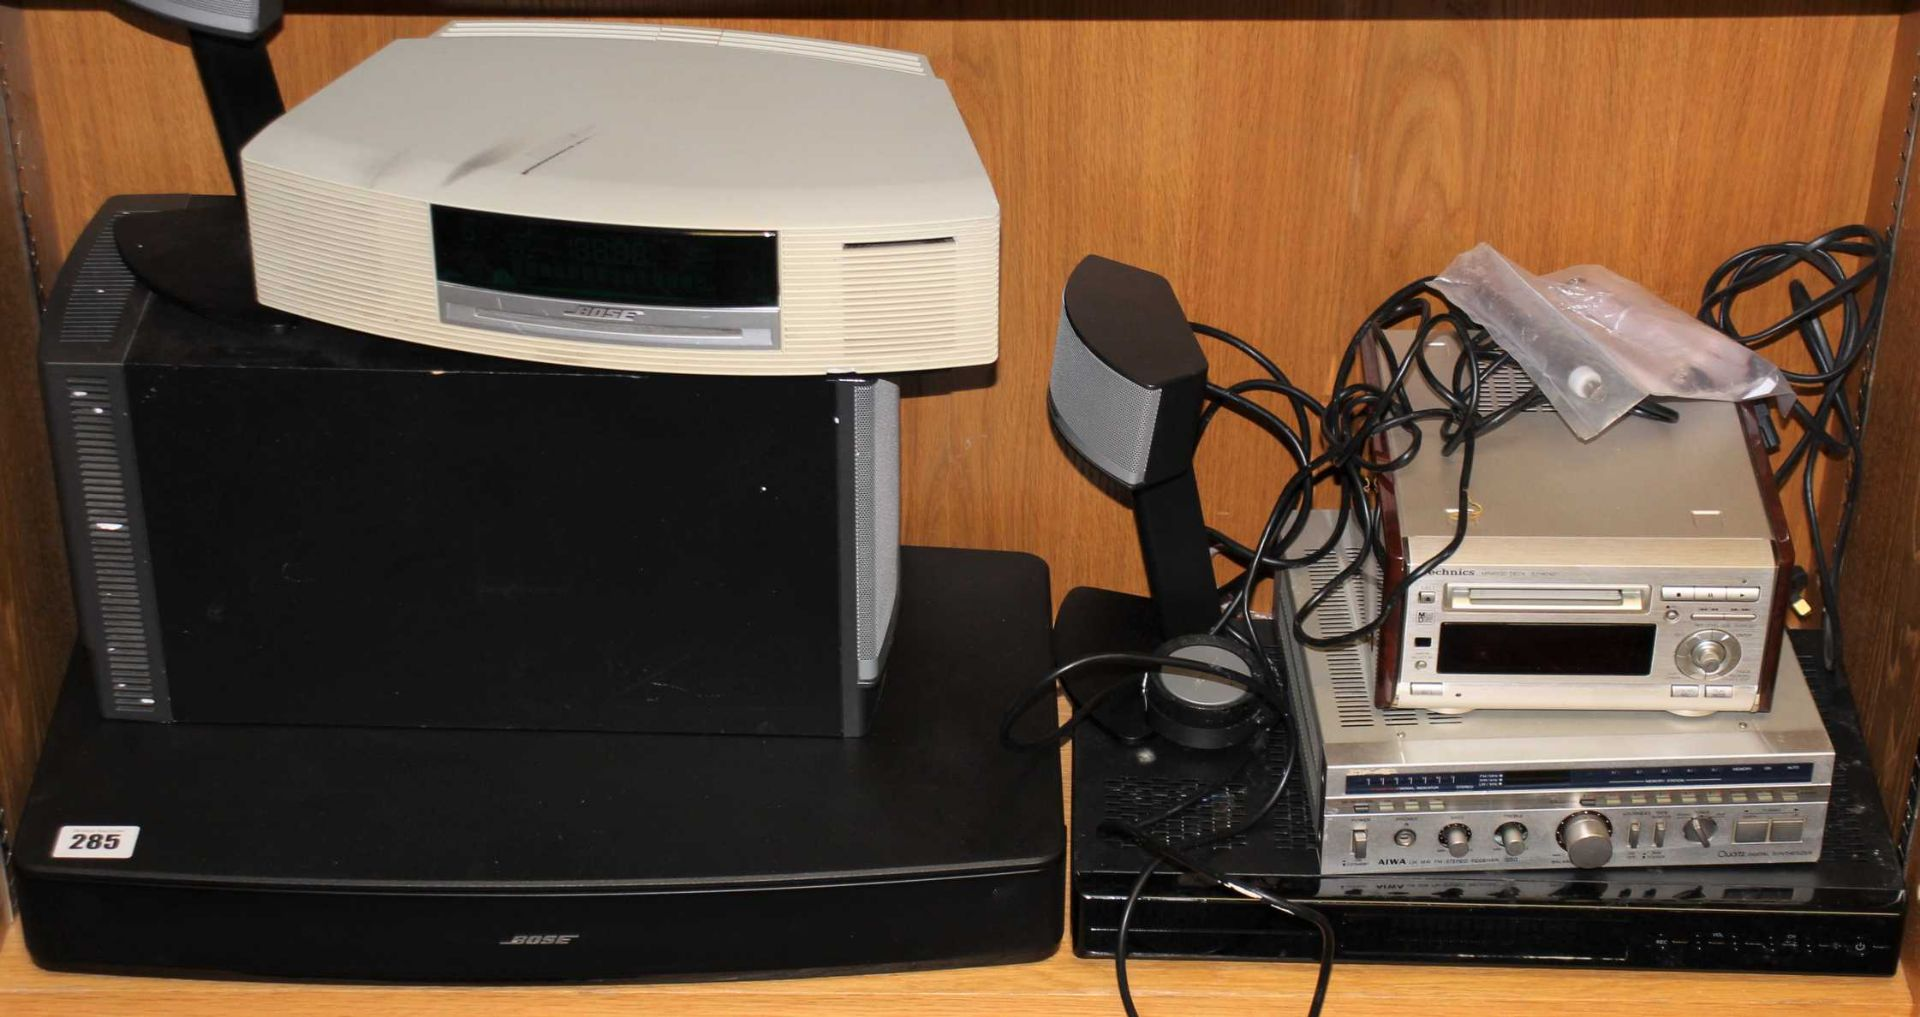 COLLECTION ONLY: A quantity of assorted pre-owned AV items to include Bose, Technics and Aiwa